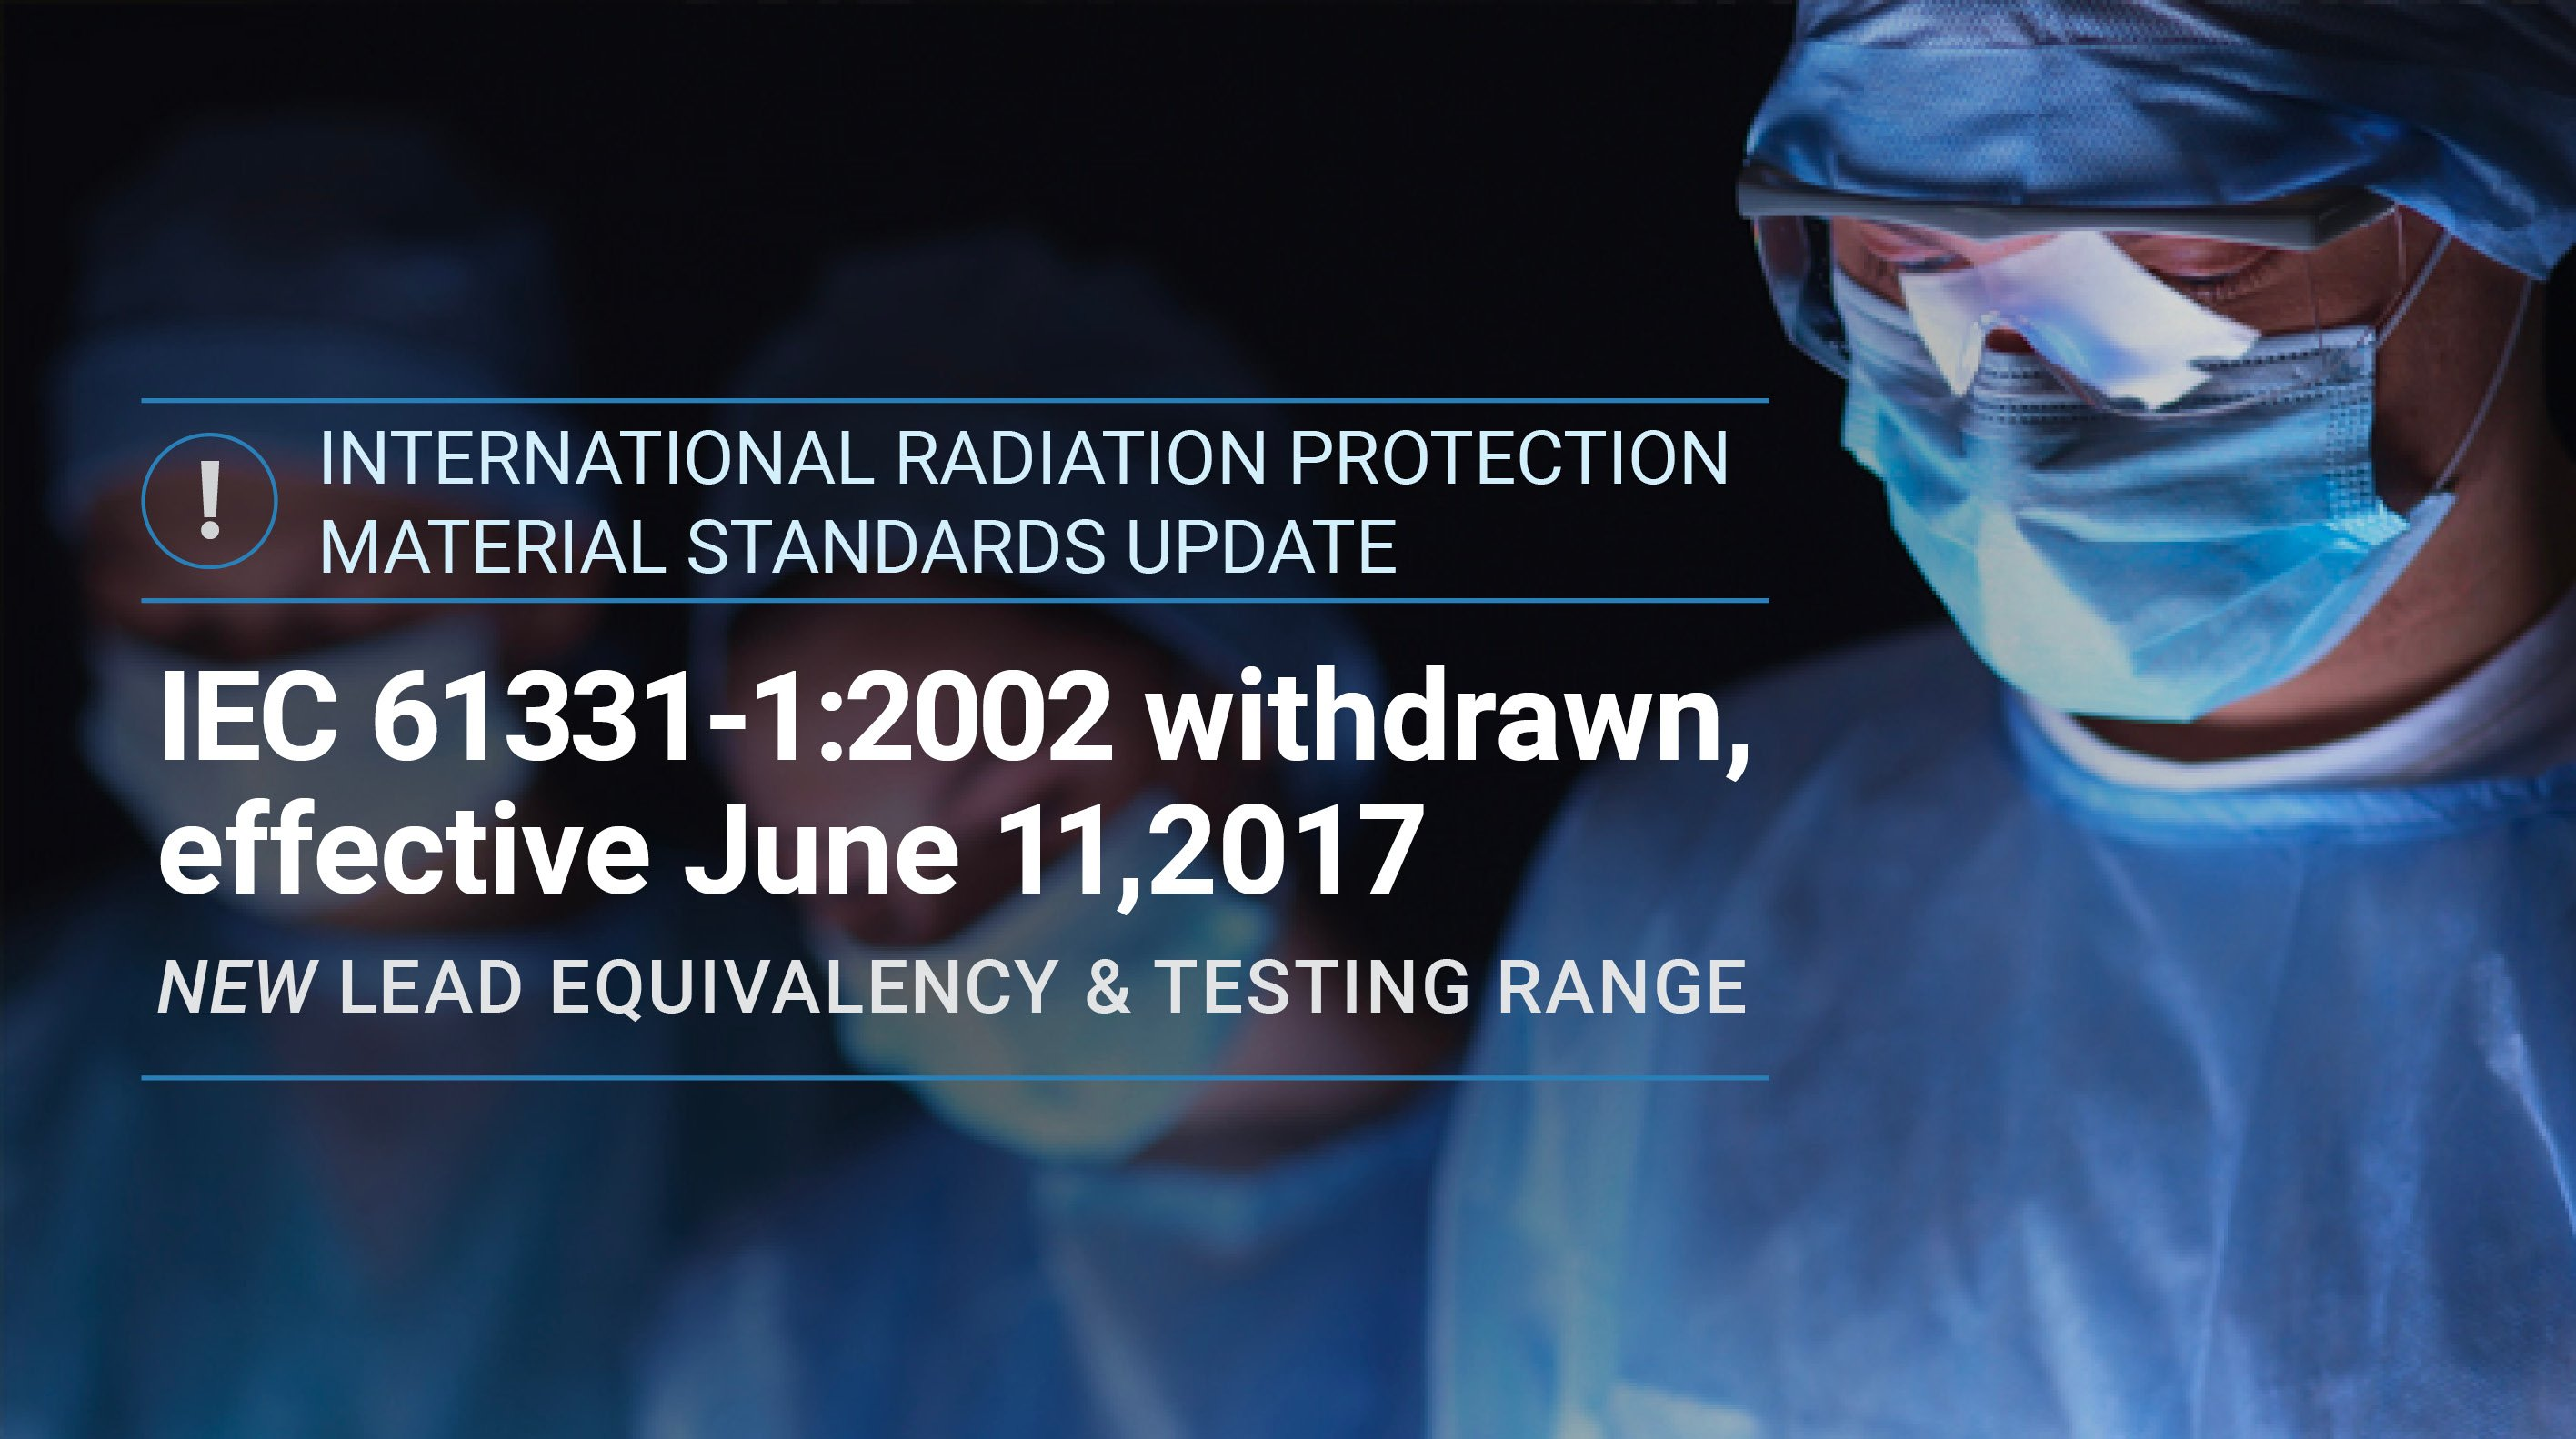 IEC 61331-1:2014: Now The Official Global Standard For Radiation Protection